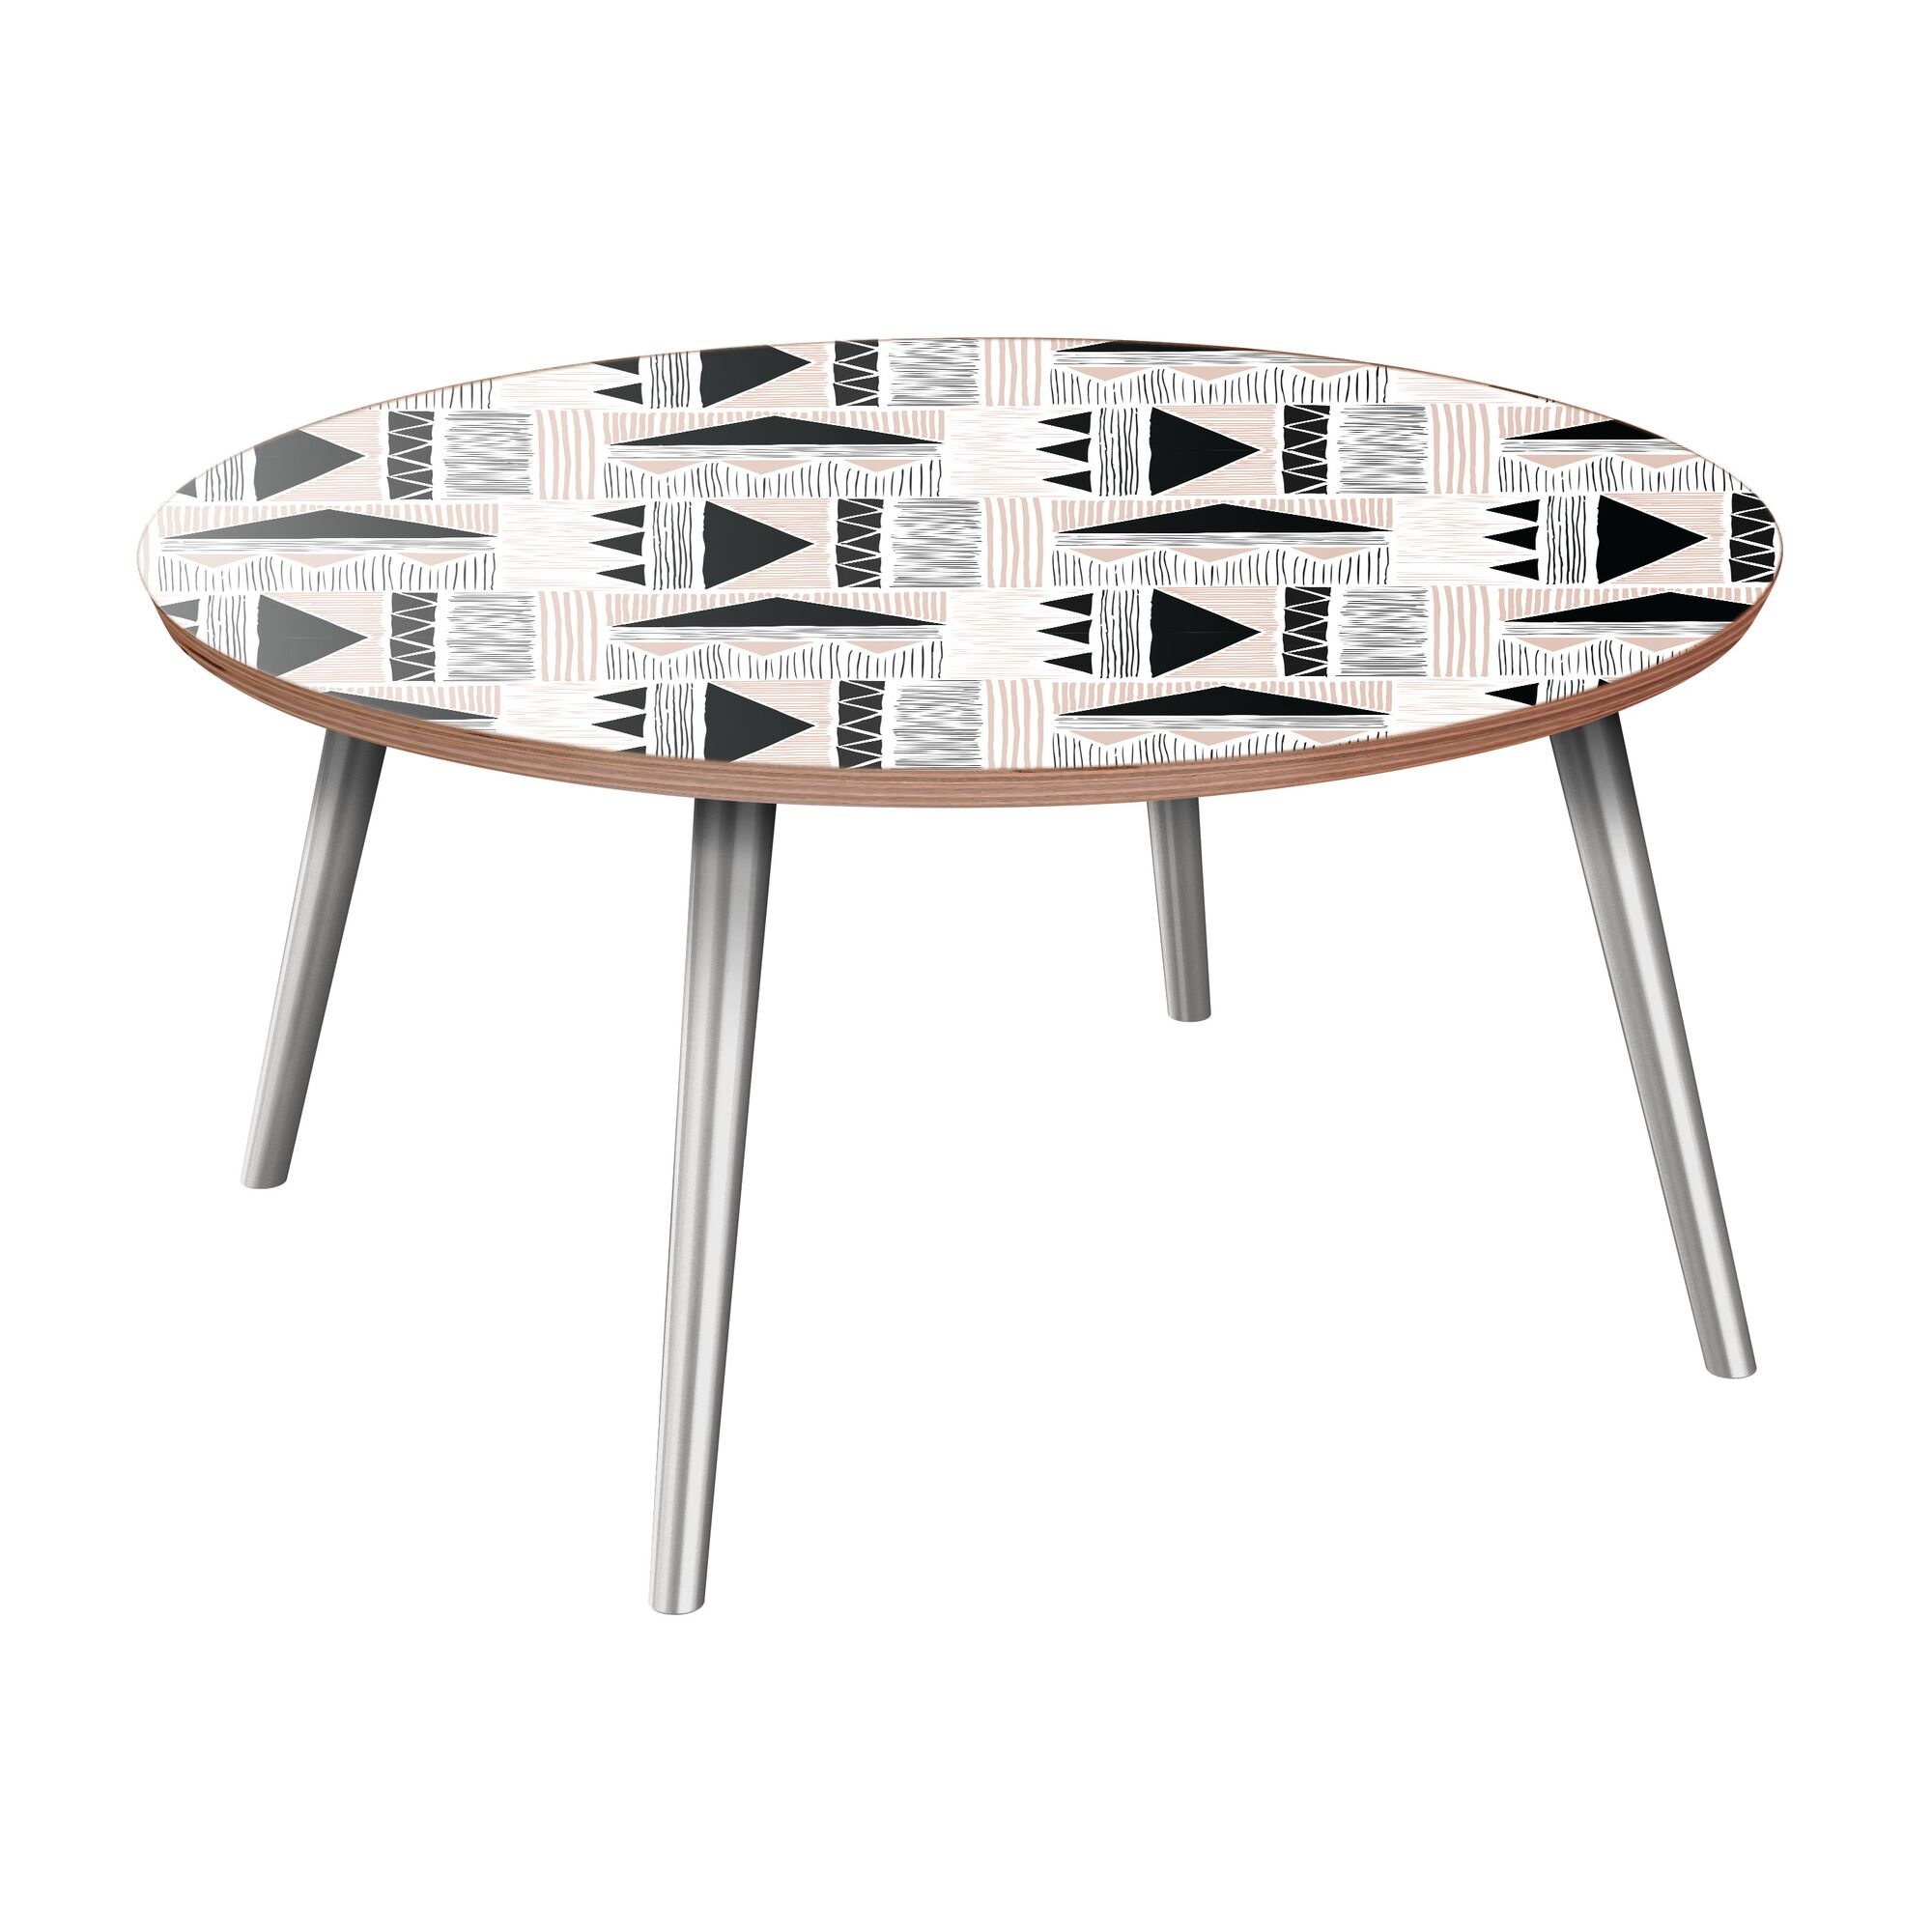 Hotwells Coffee Table Table Base Color: Chrome, Table Top Color: Walnut